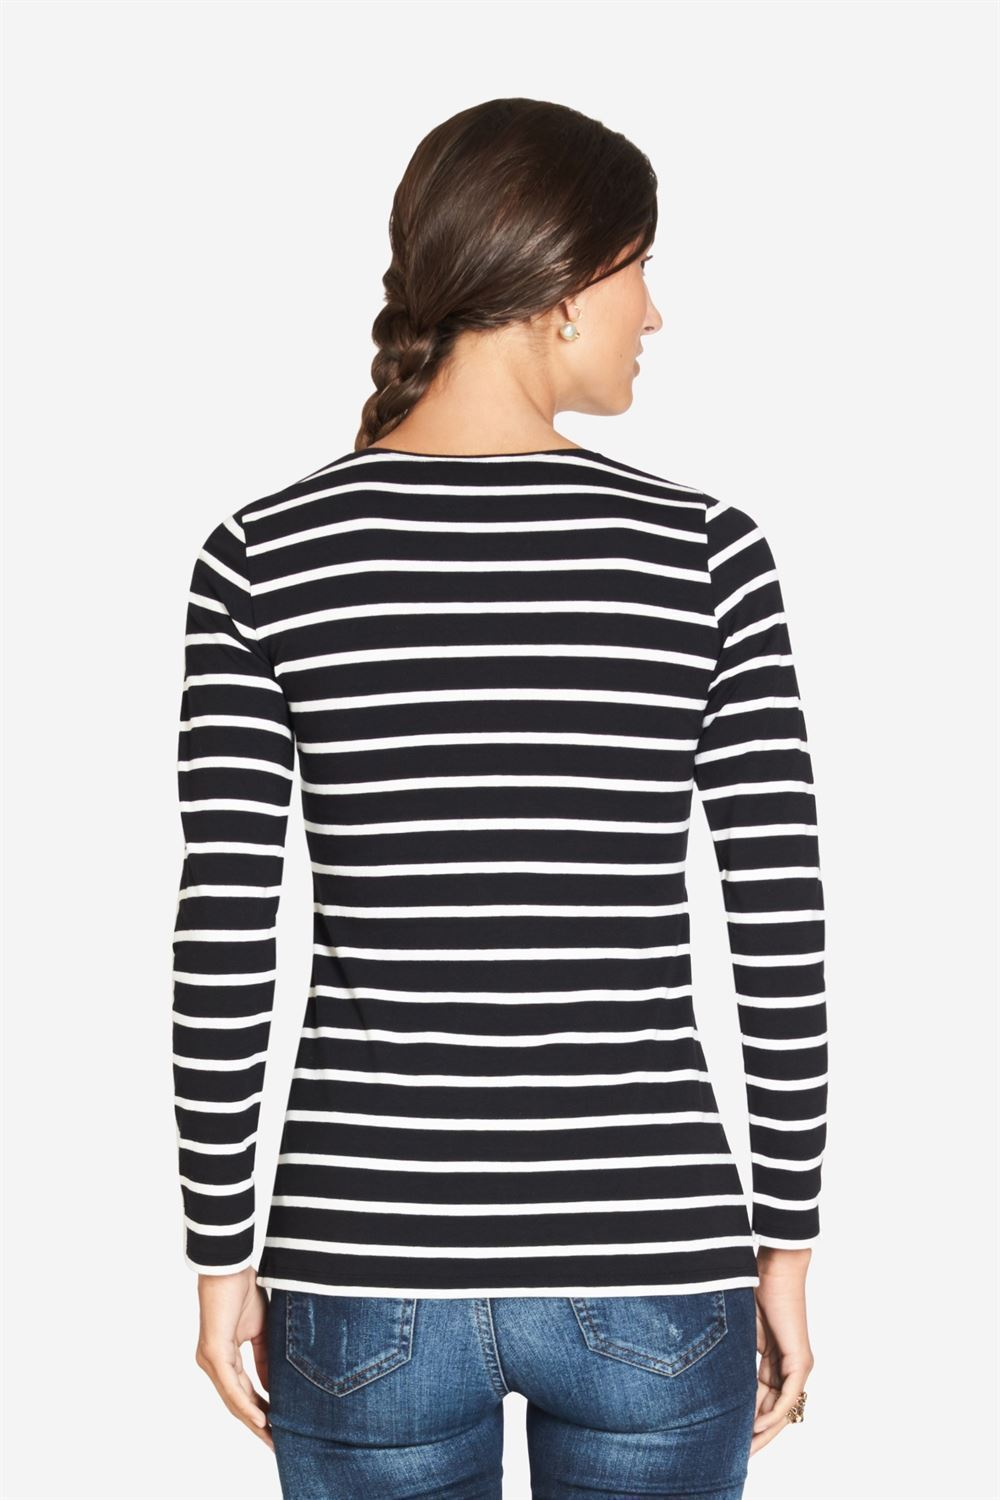 Black and white Striped maternity blouse - classic T-shirt model